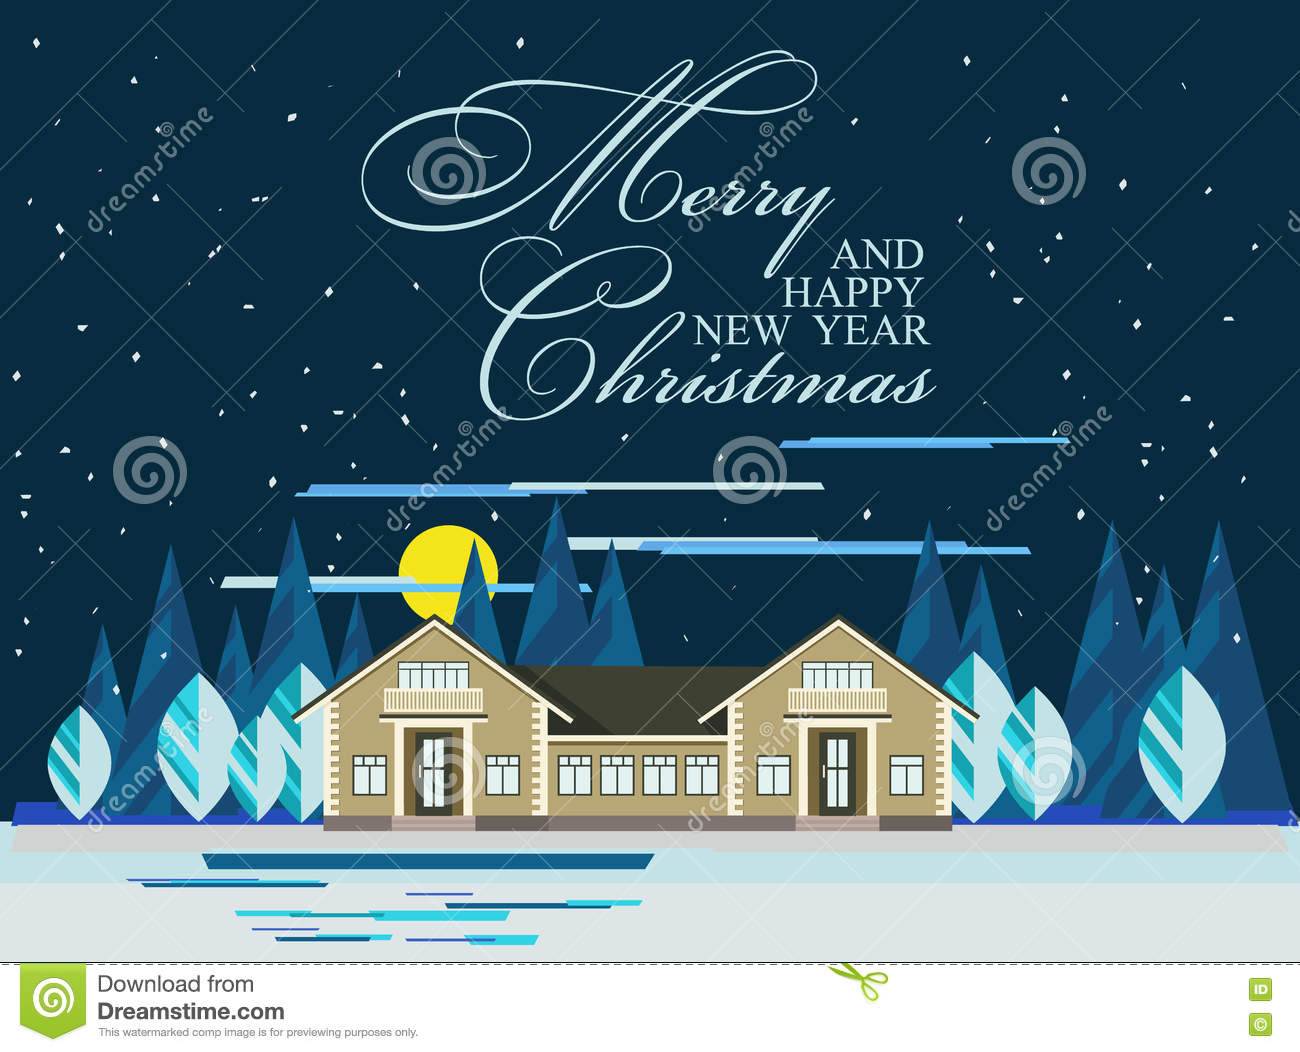 happy new year card or poster nature winter landscape with christmas trees house snow night sky with moon vector illustration in flat style